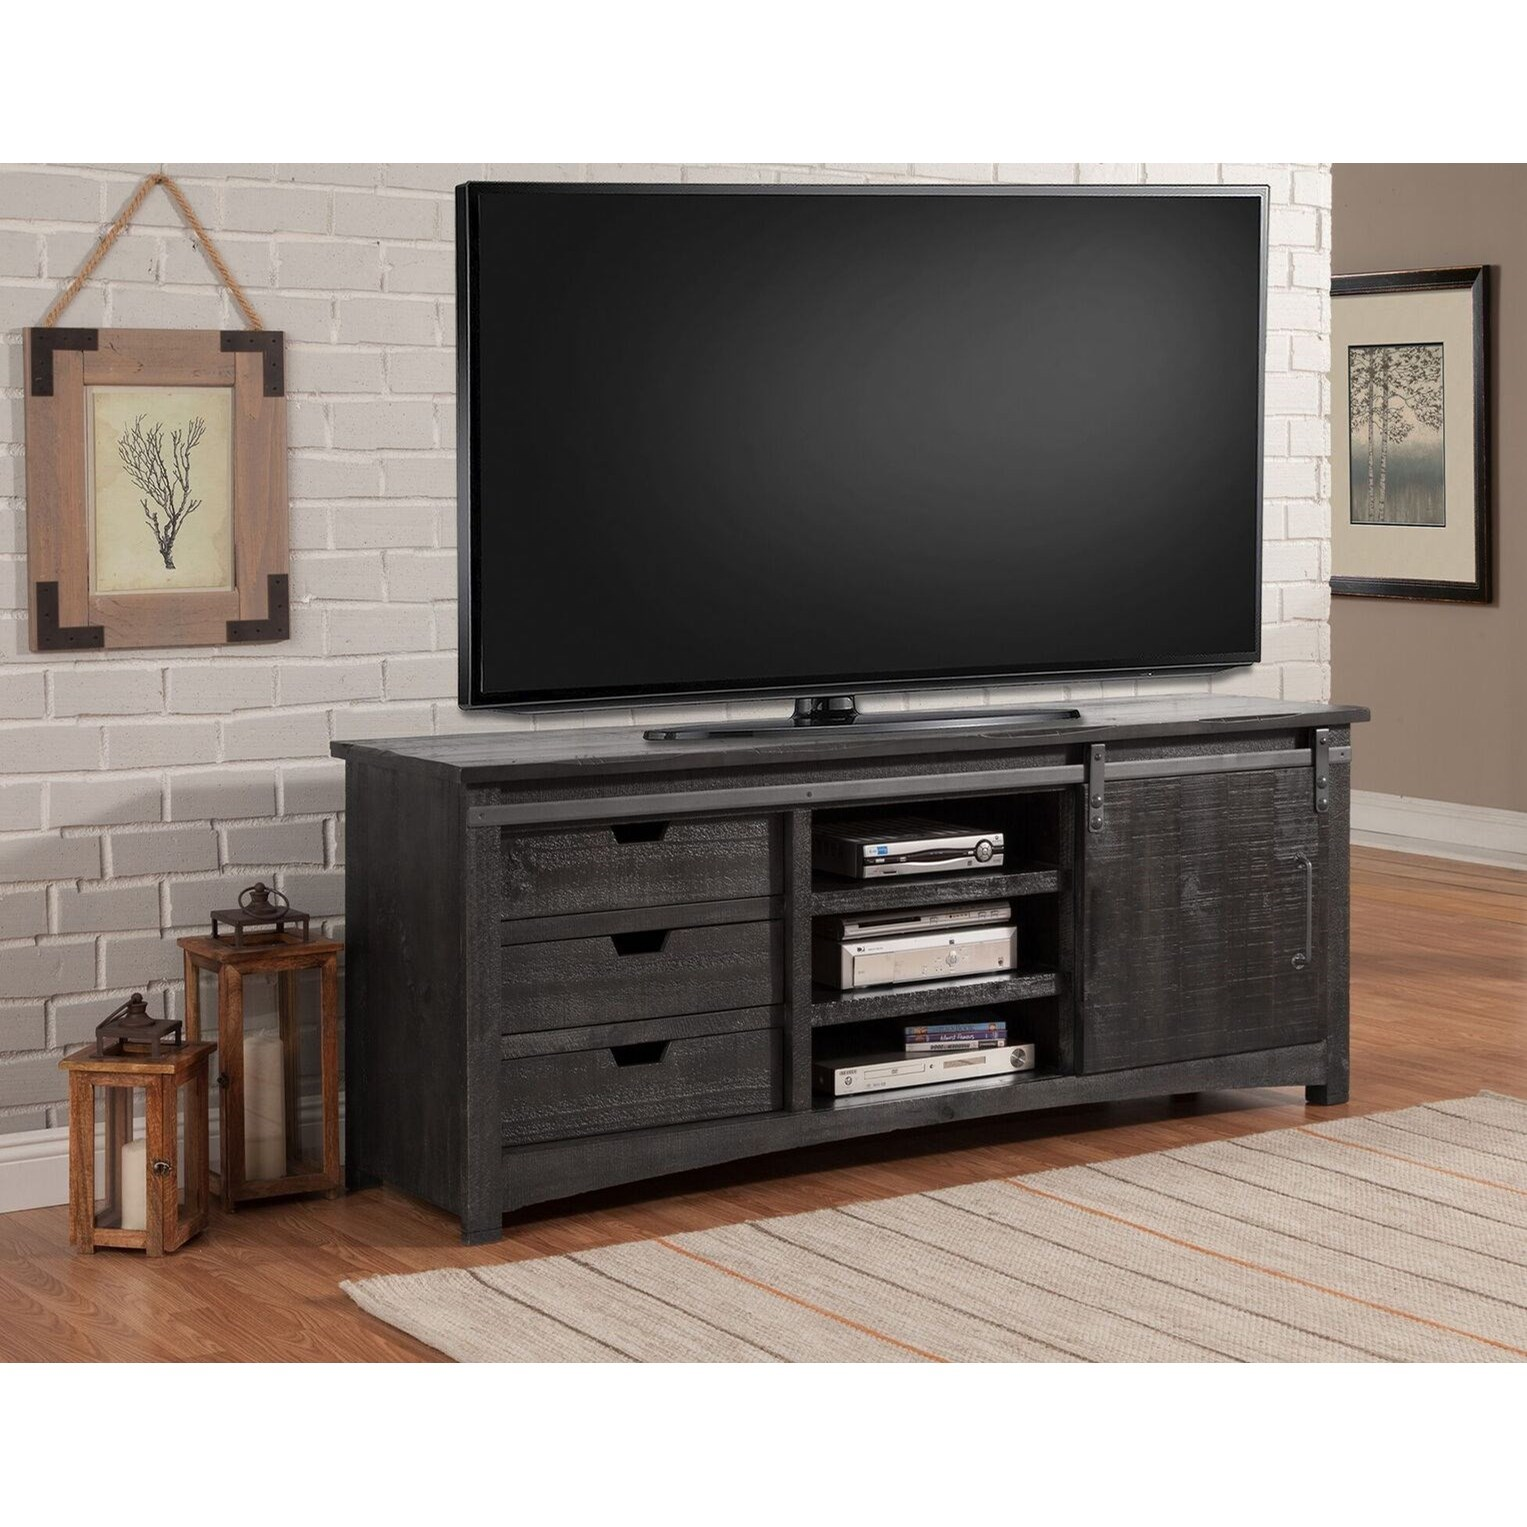 Durango 76 Inch TV Console by Parker House at Zak's Home